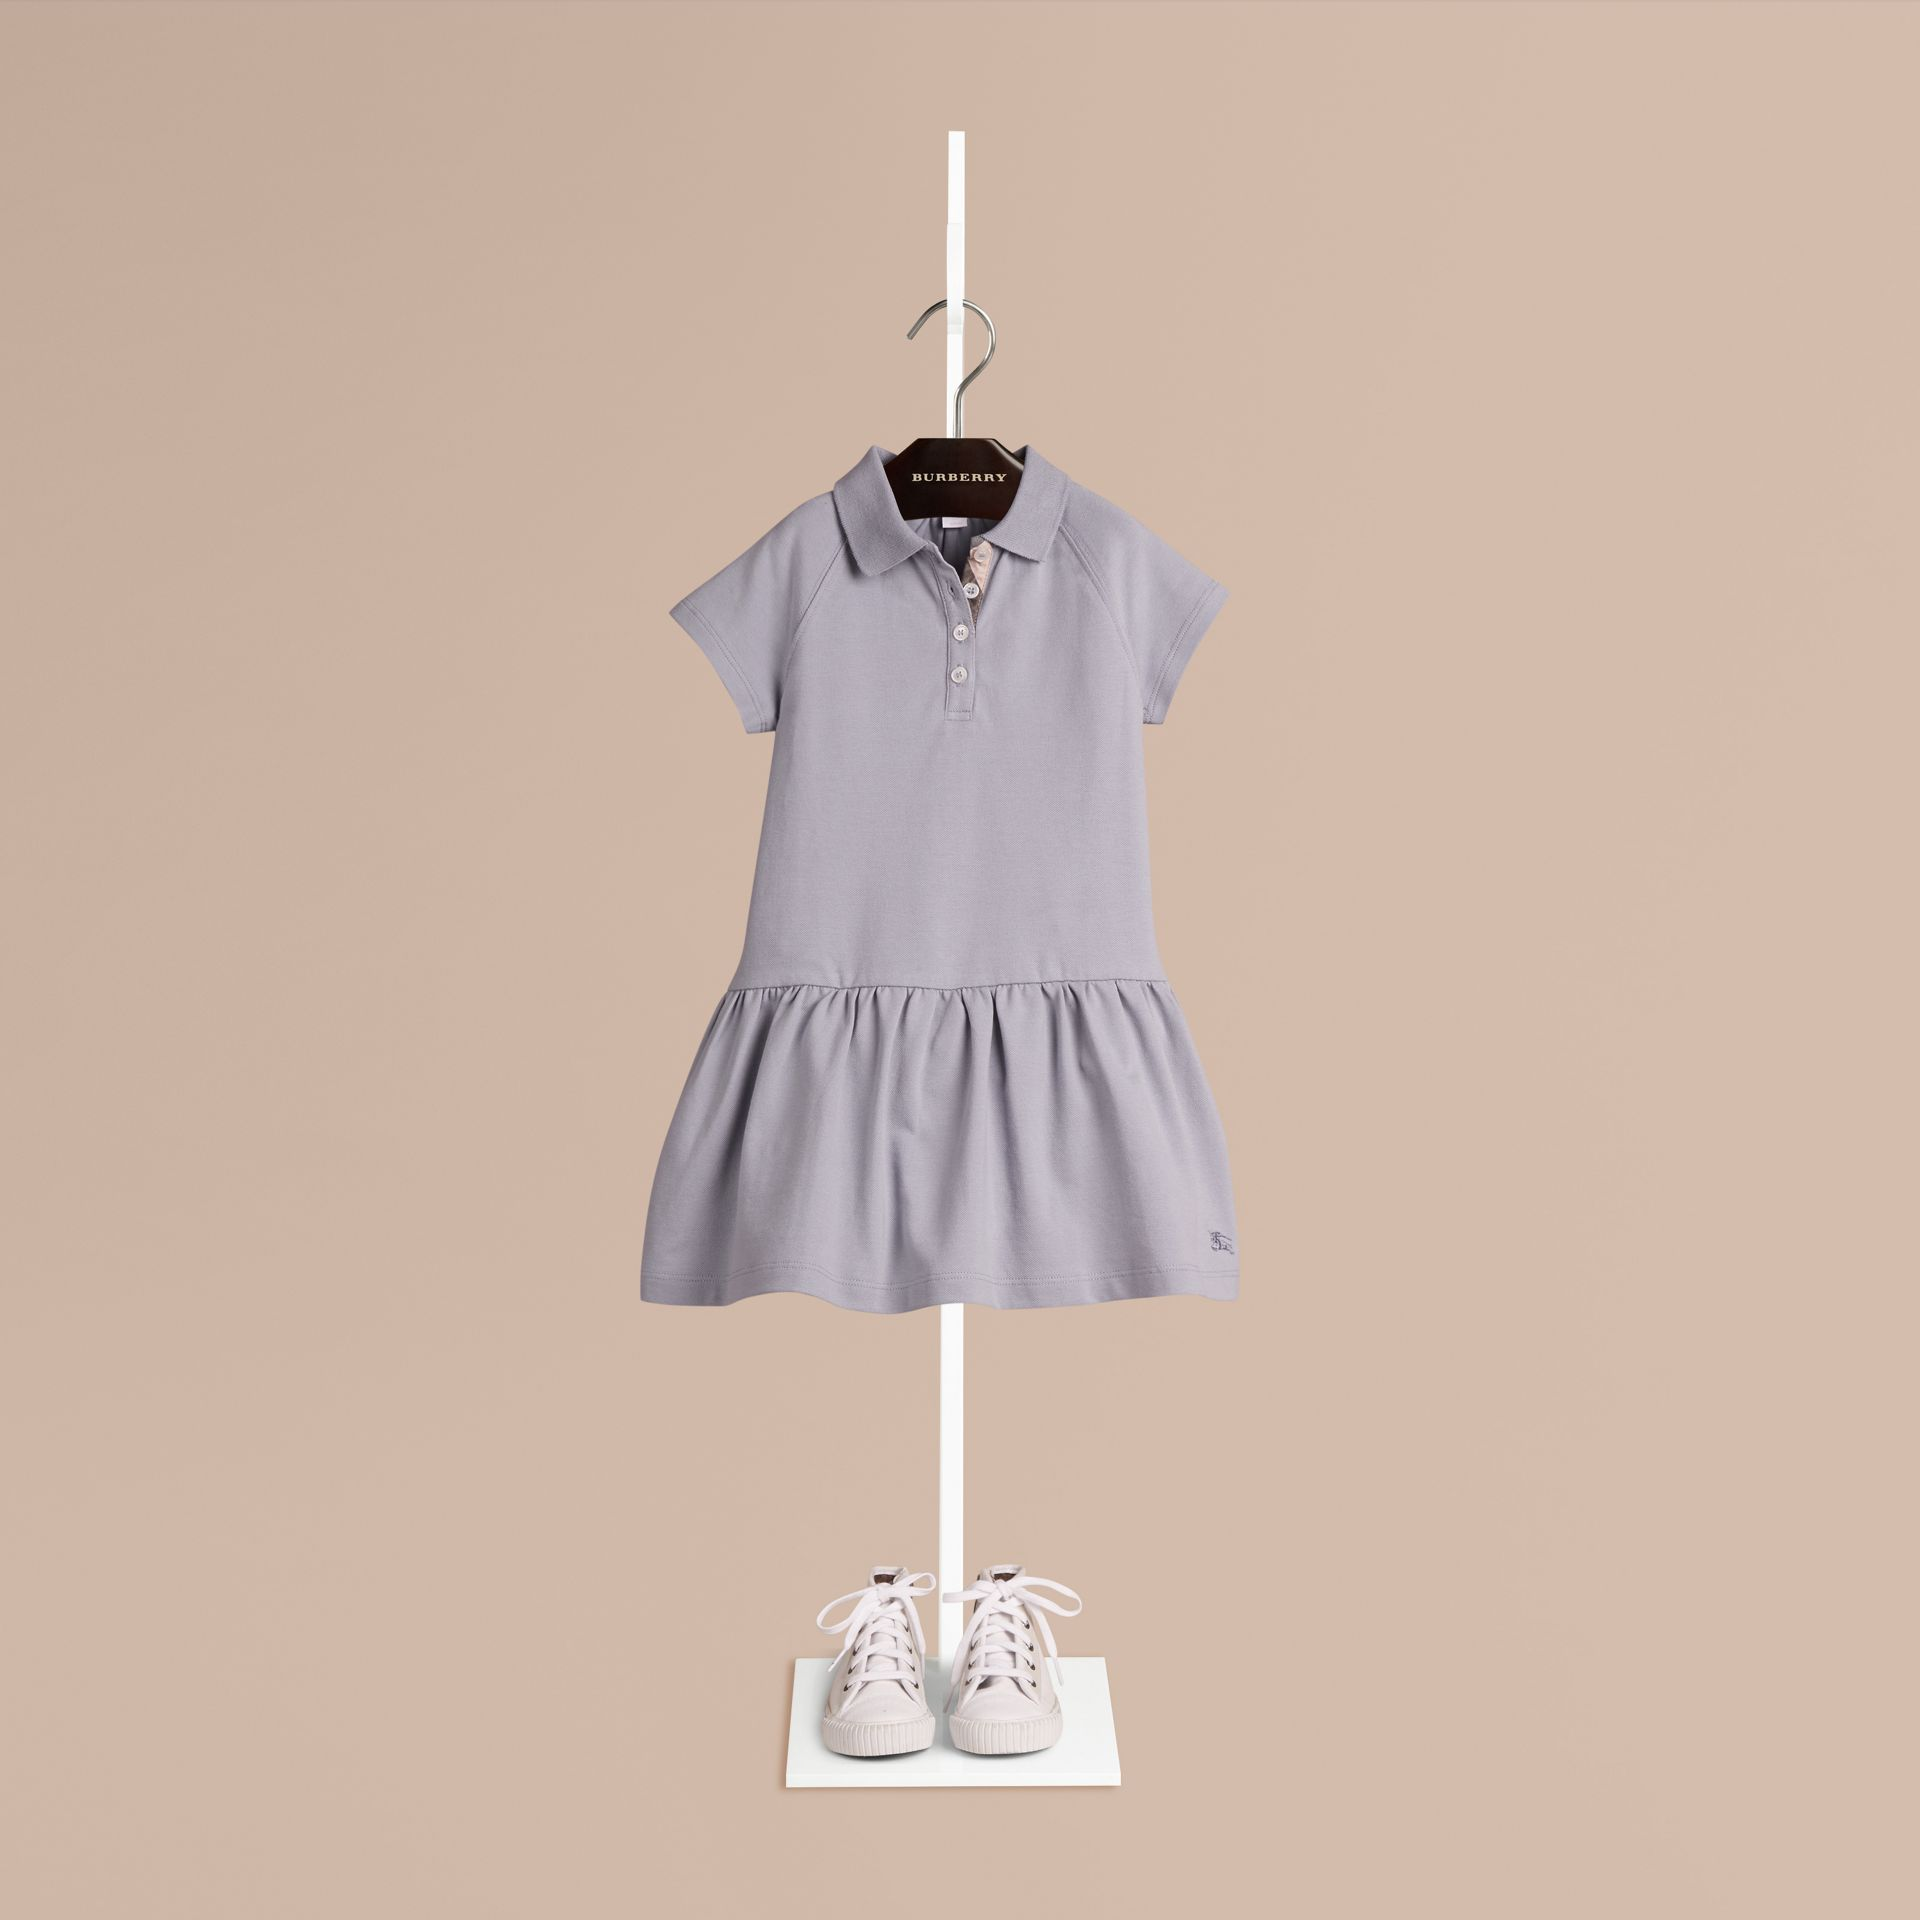 Pale lupin blue Check Placket Cotton Blend T-Shirt Dress Pale Lupin Blue - gallery image 1